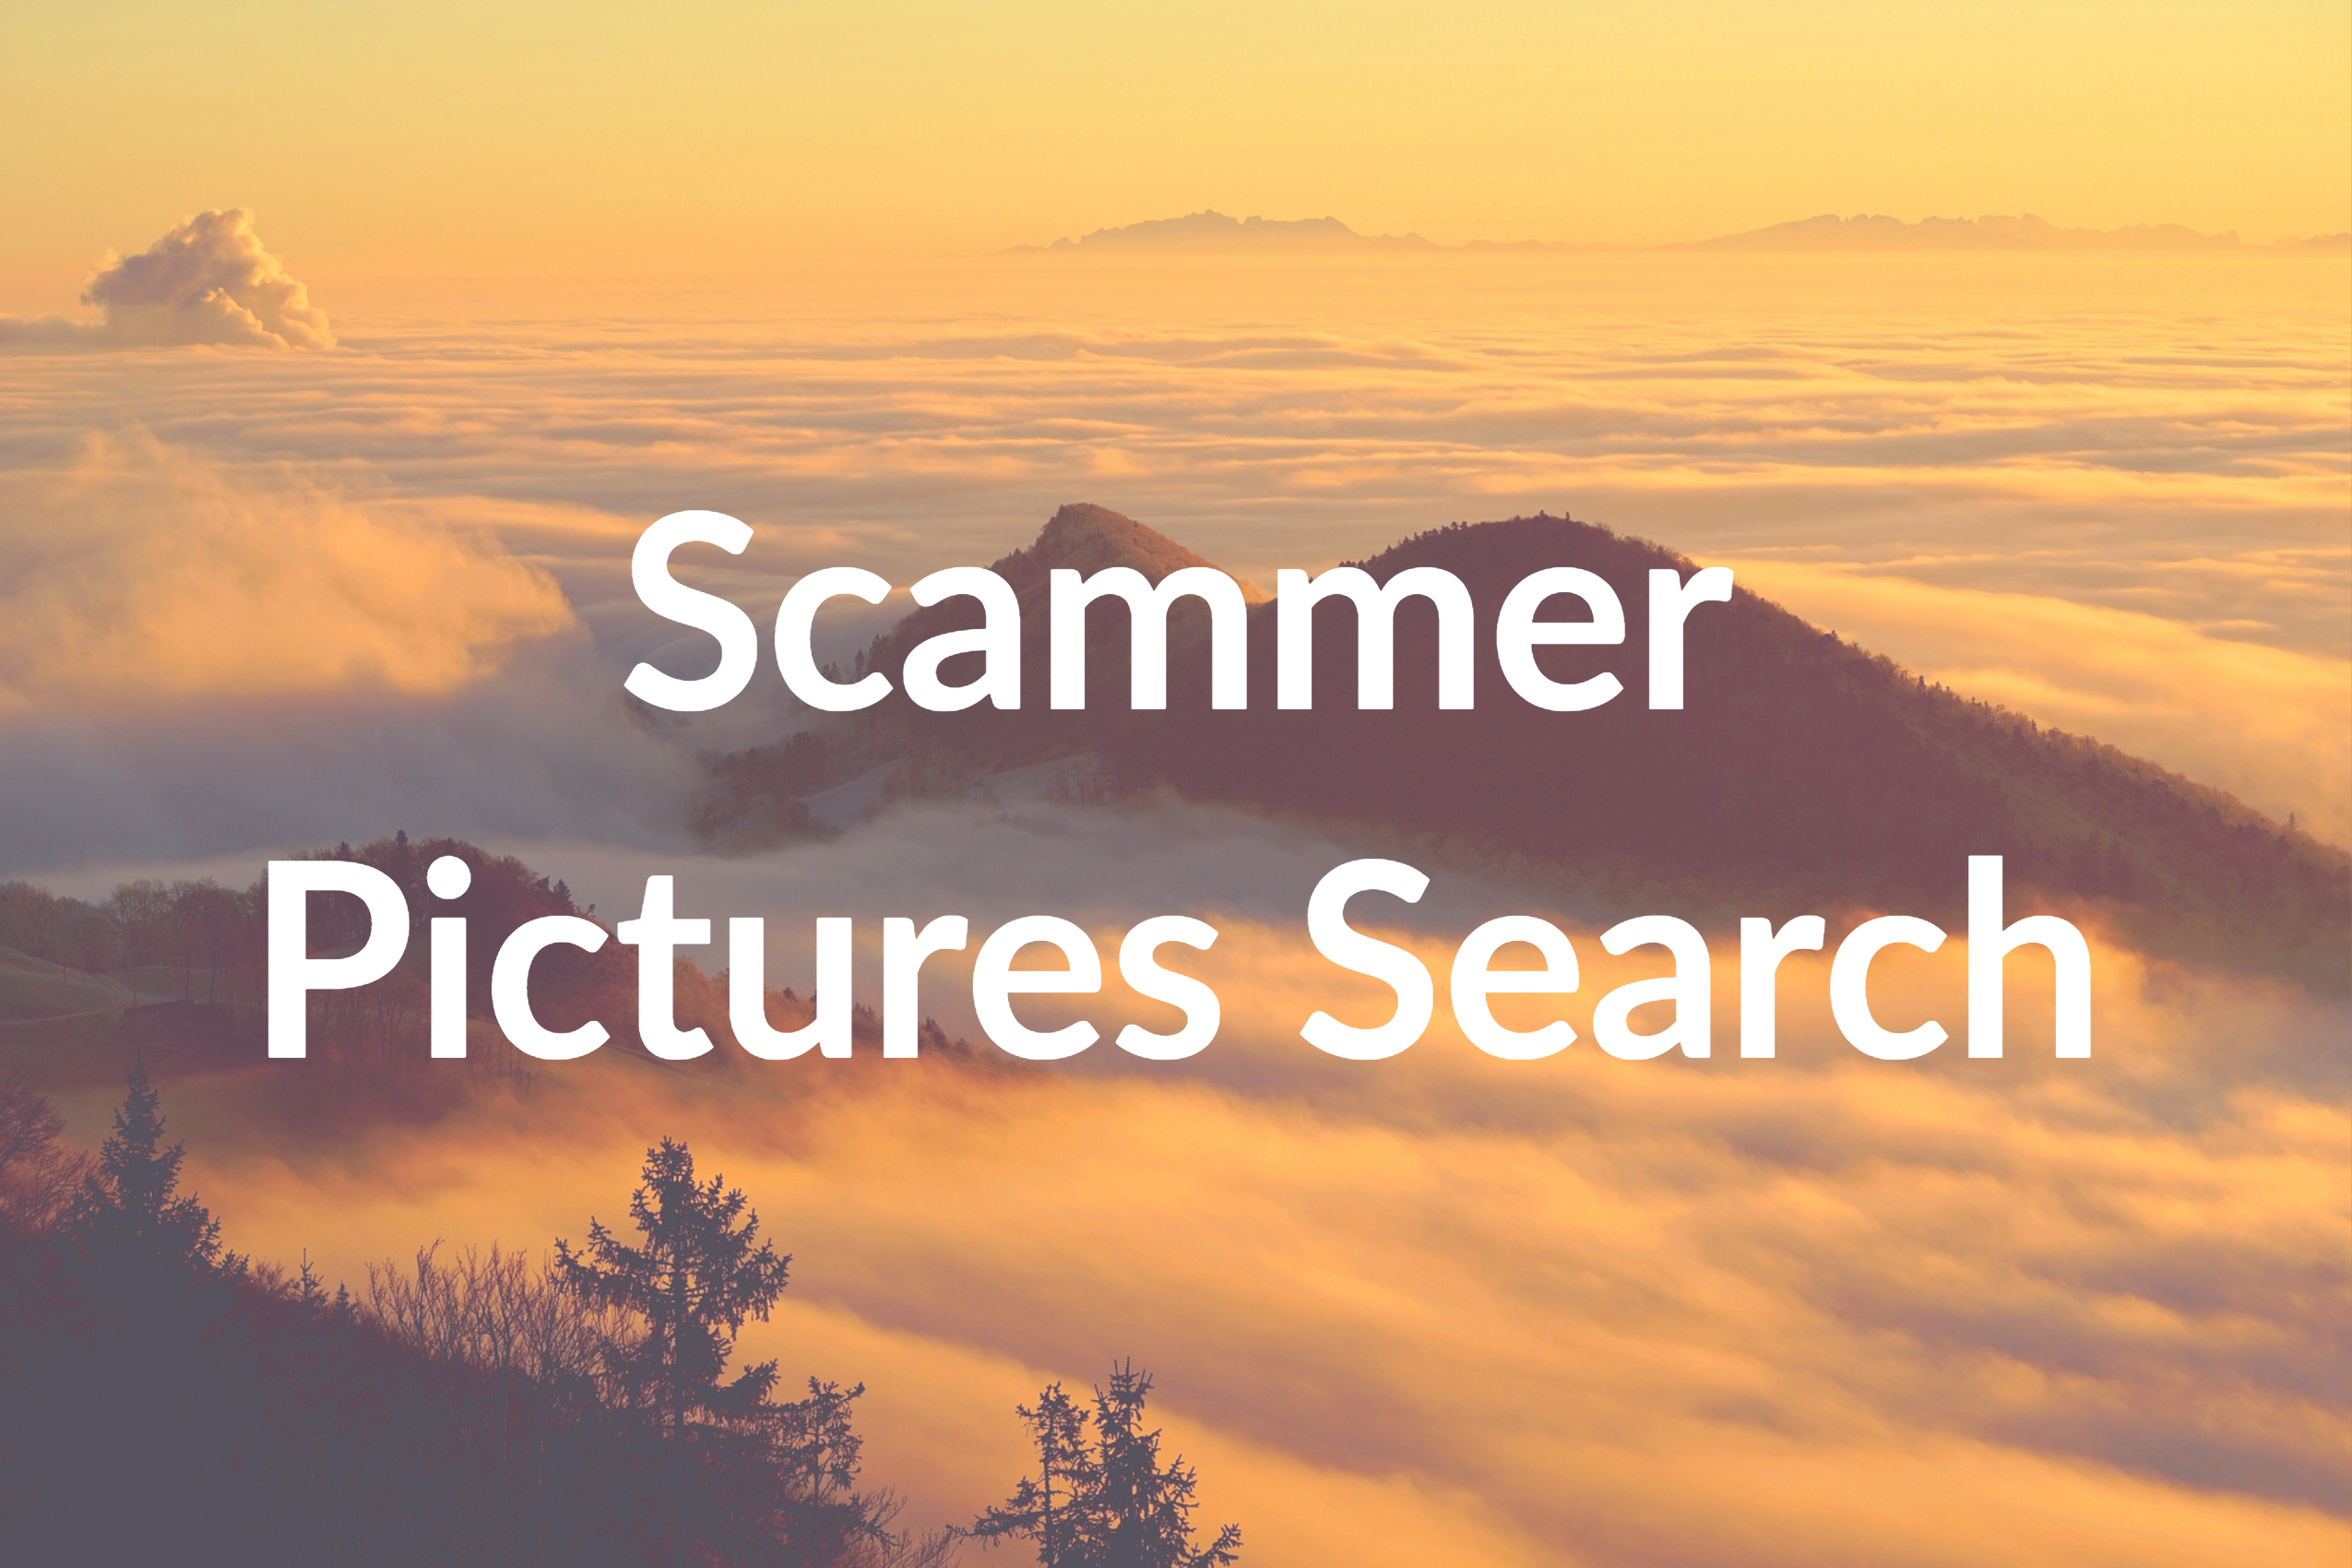 How to Identify Scammer Pictures with Berify